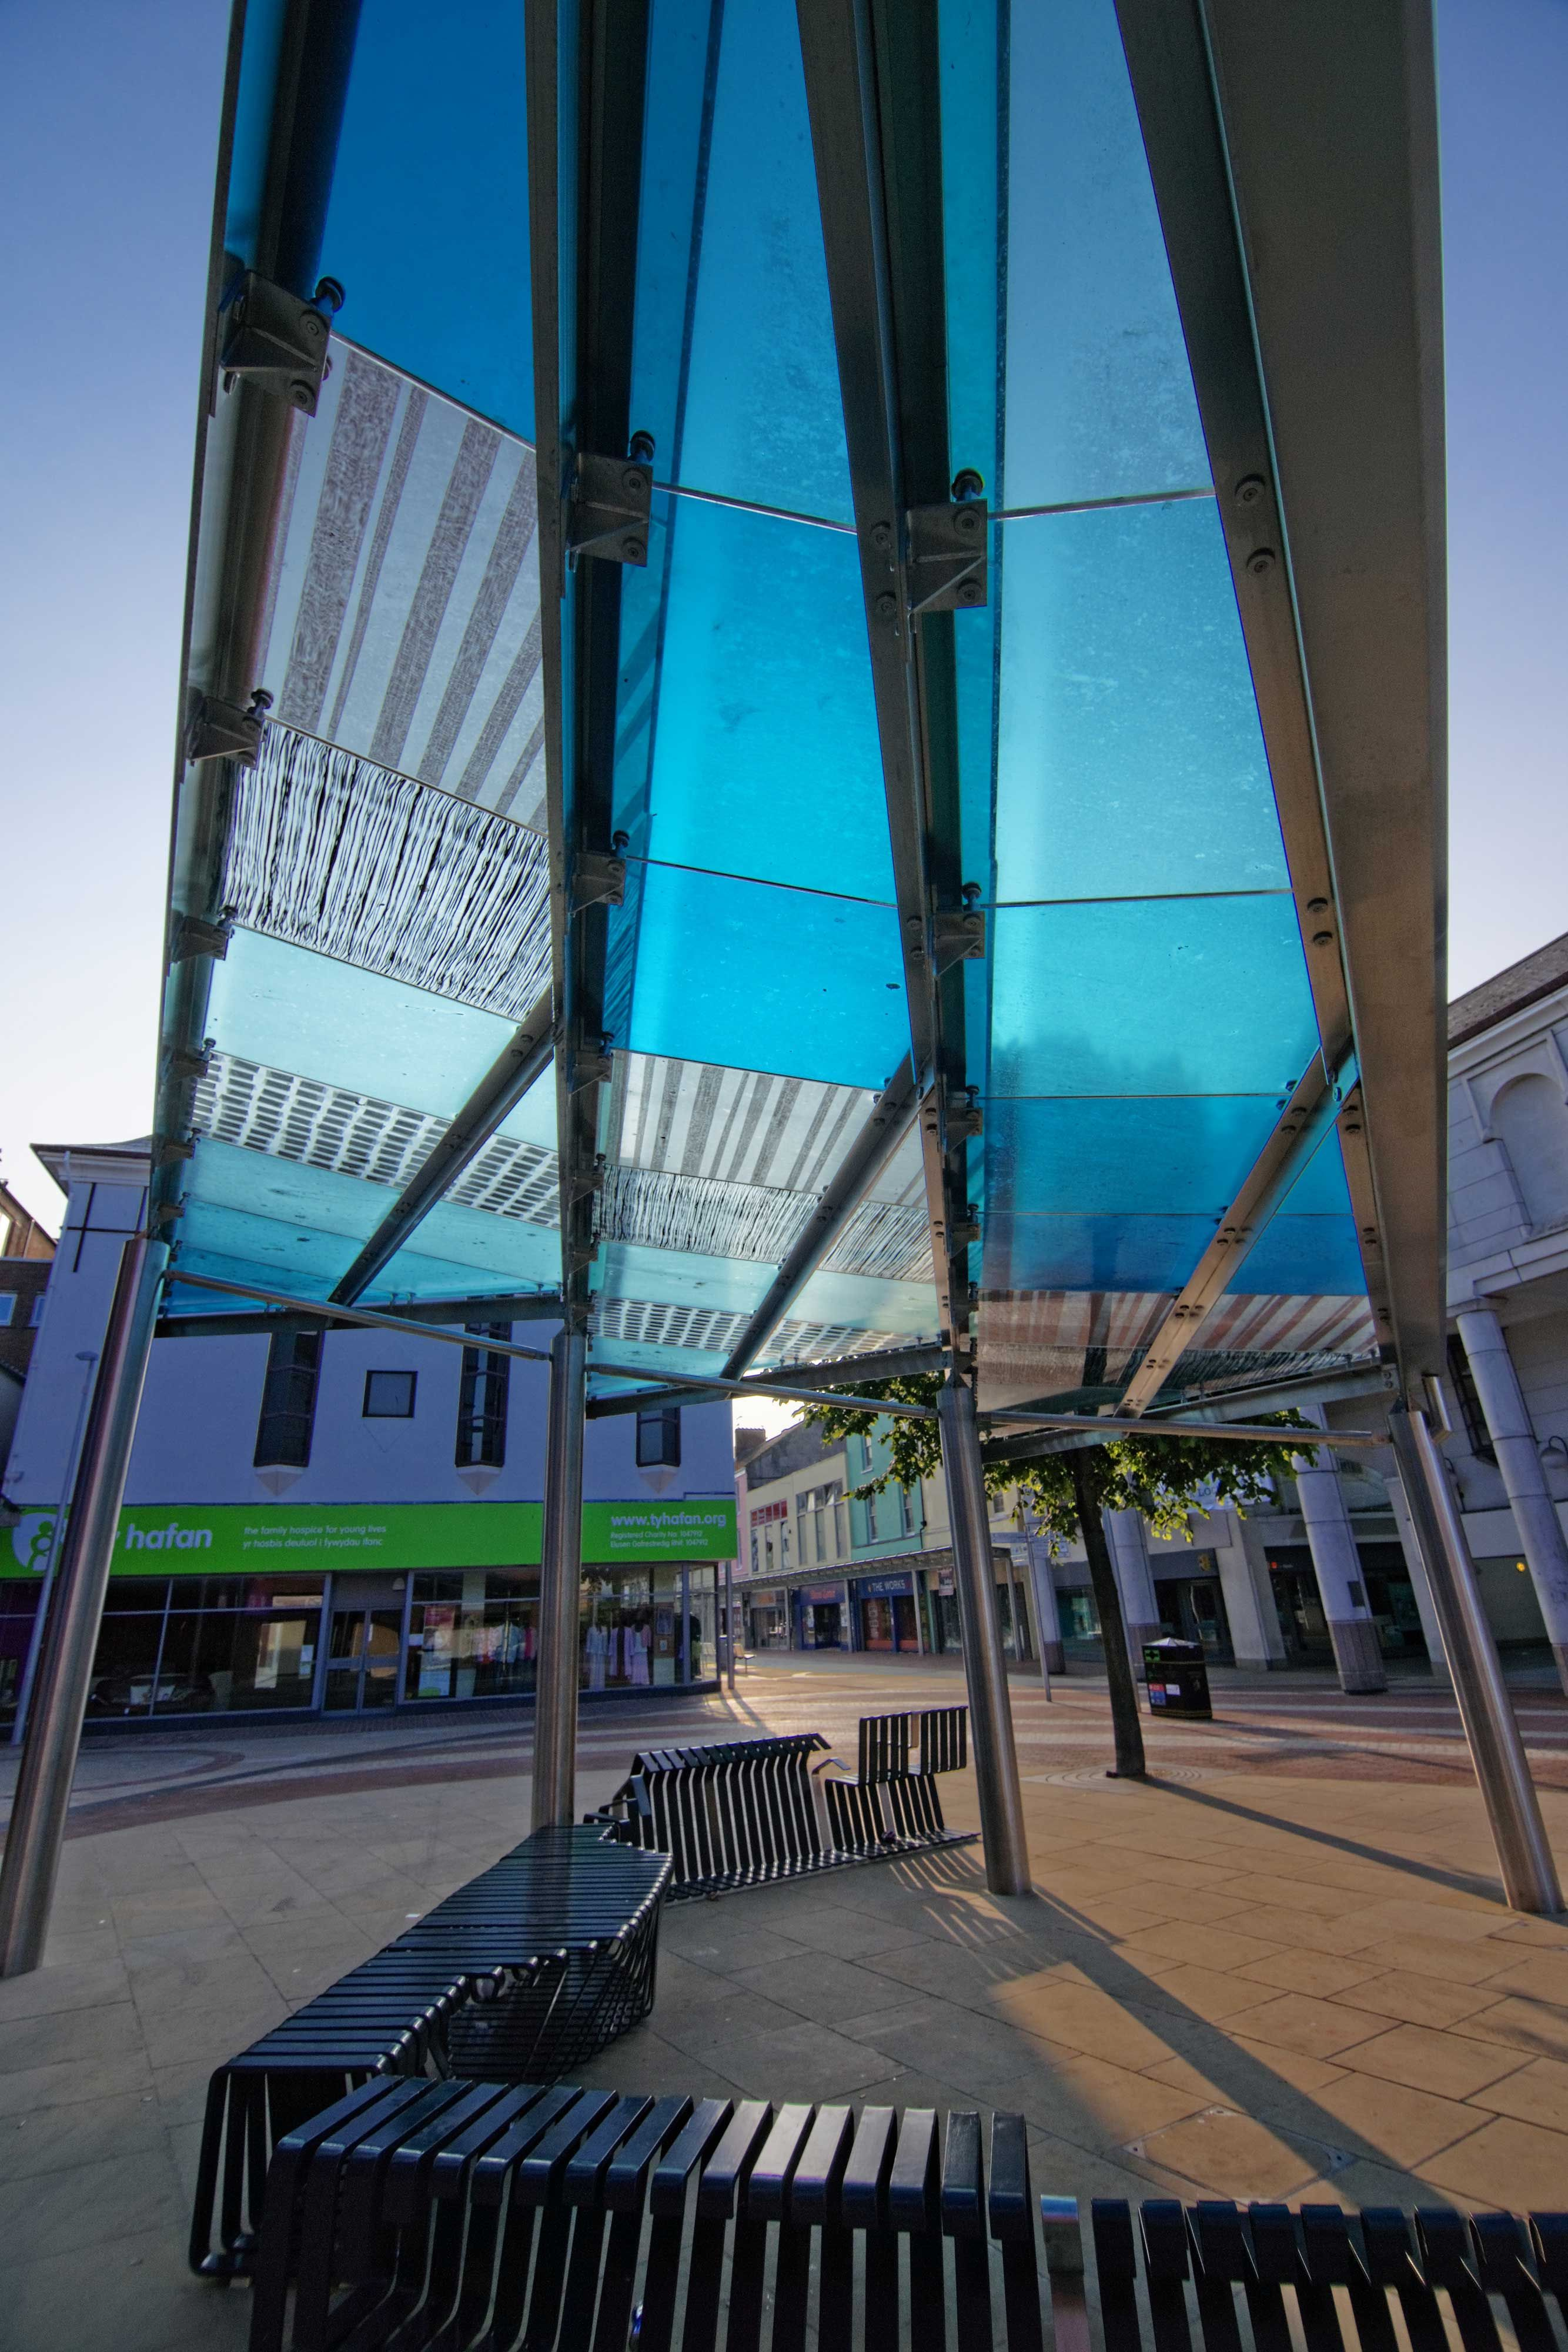 Glass Canopy Sculpture And Paved Area Part Of The Re